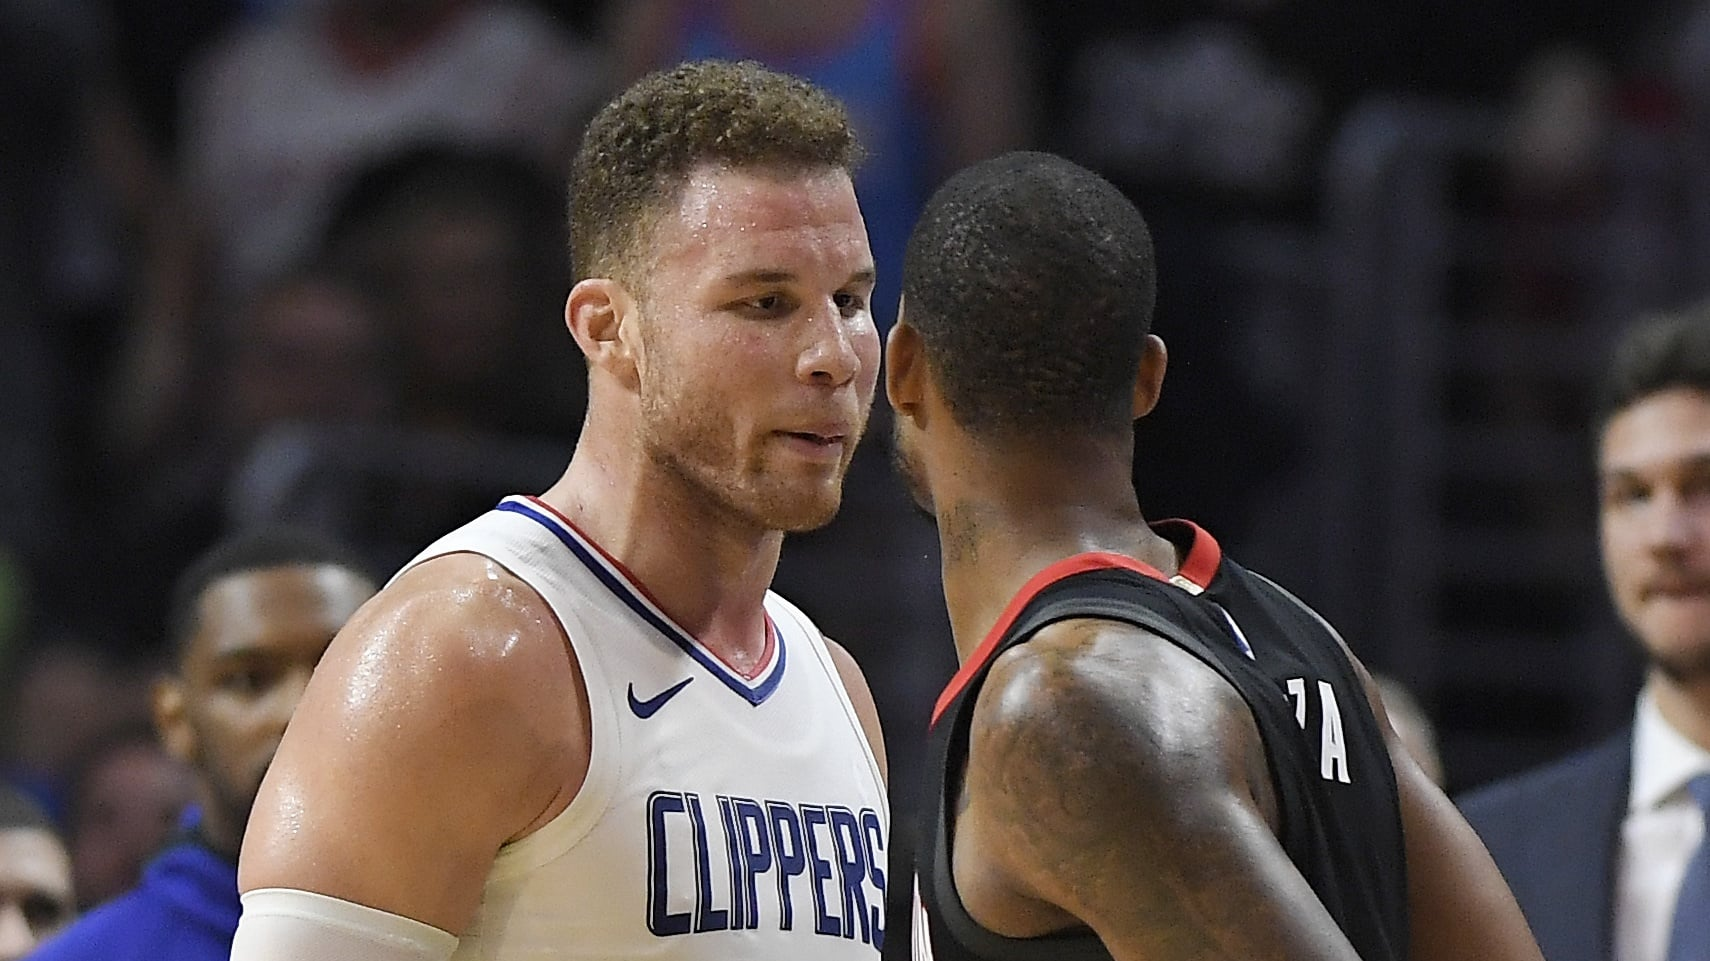 Chris Paul, Rockets try to storm Clippers locker room